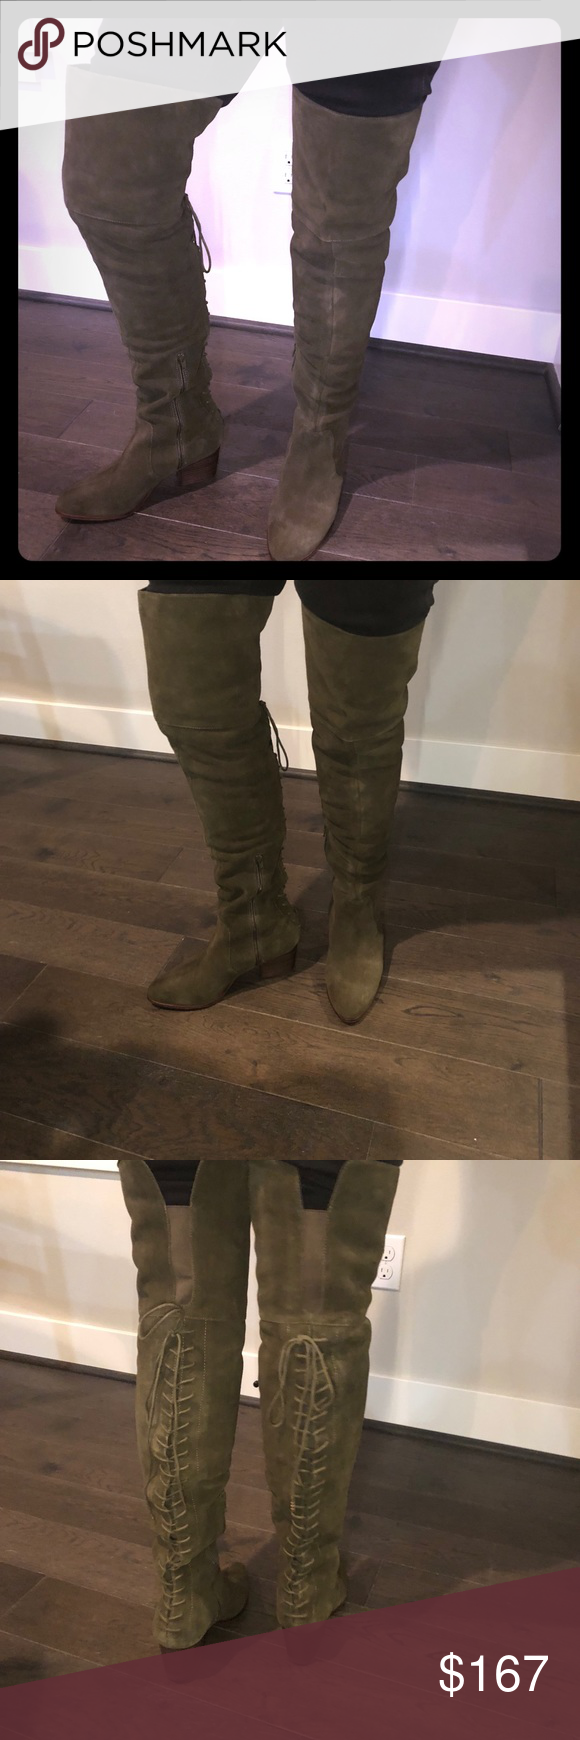 knee boot. Olive green suede. Brand